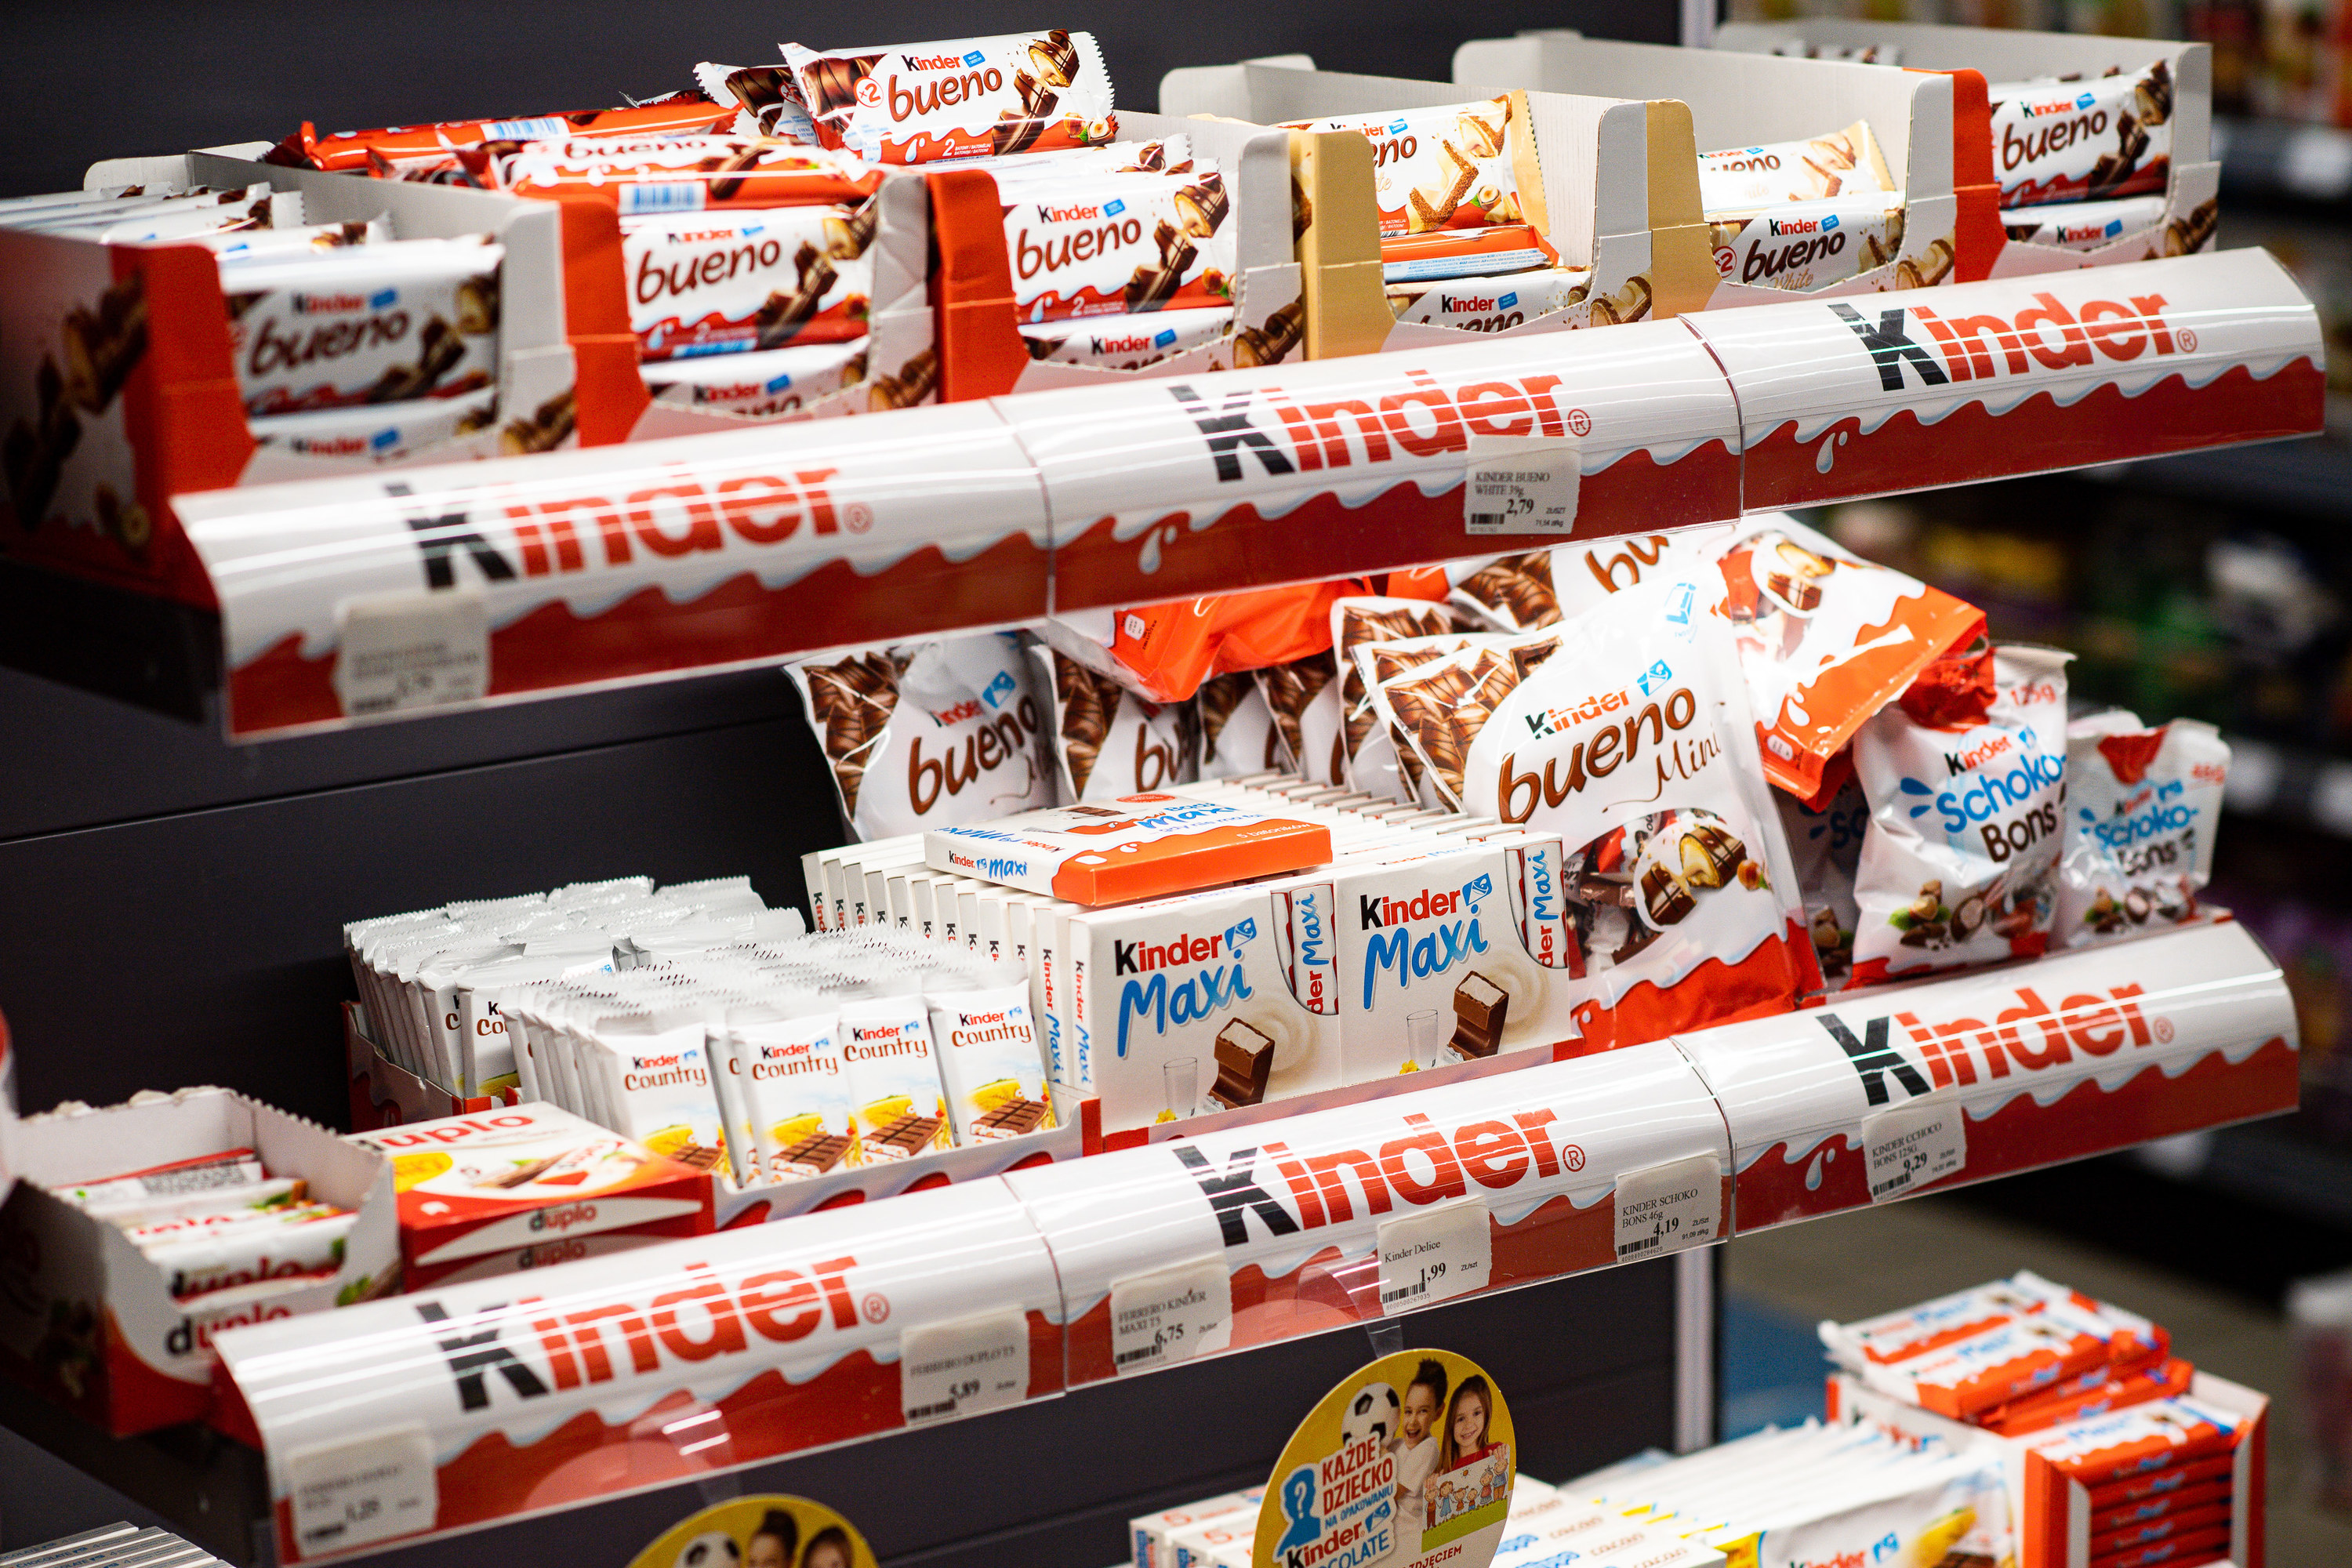 Kinder chocolate on display at a store